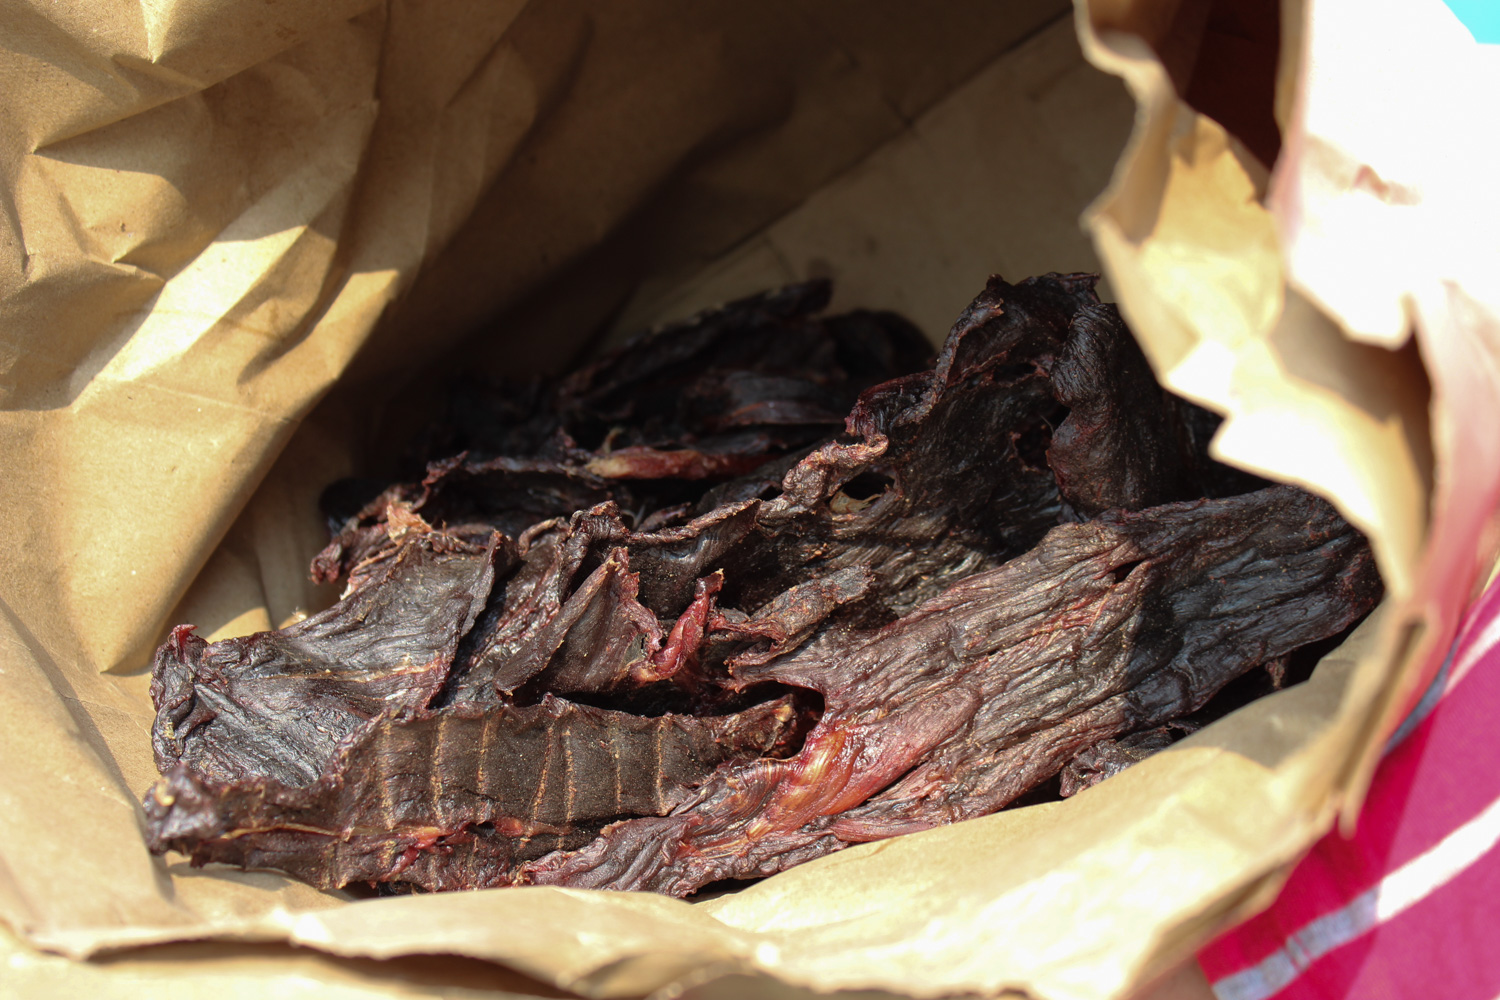 Caribou jerky after it has been dried in a smokehouse. (Photo: Sarah Sibley)